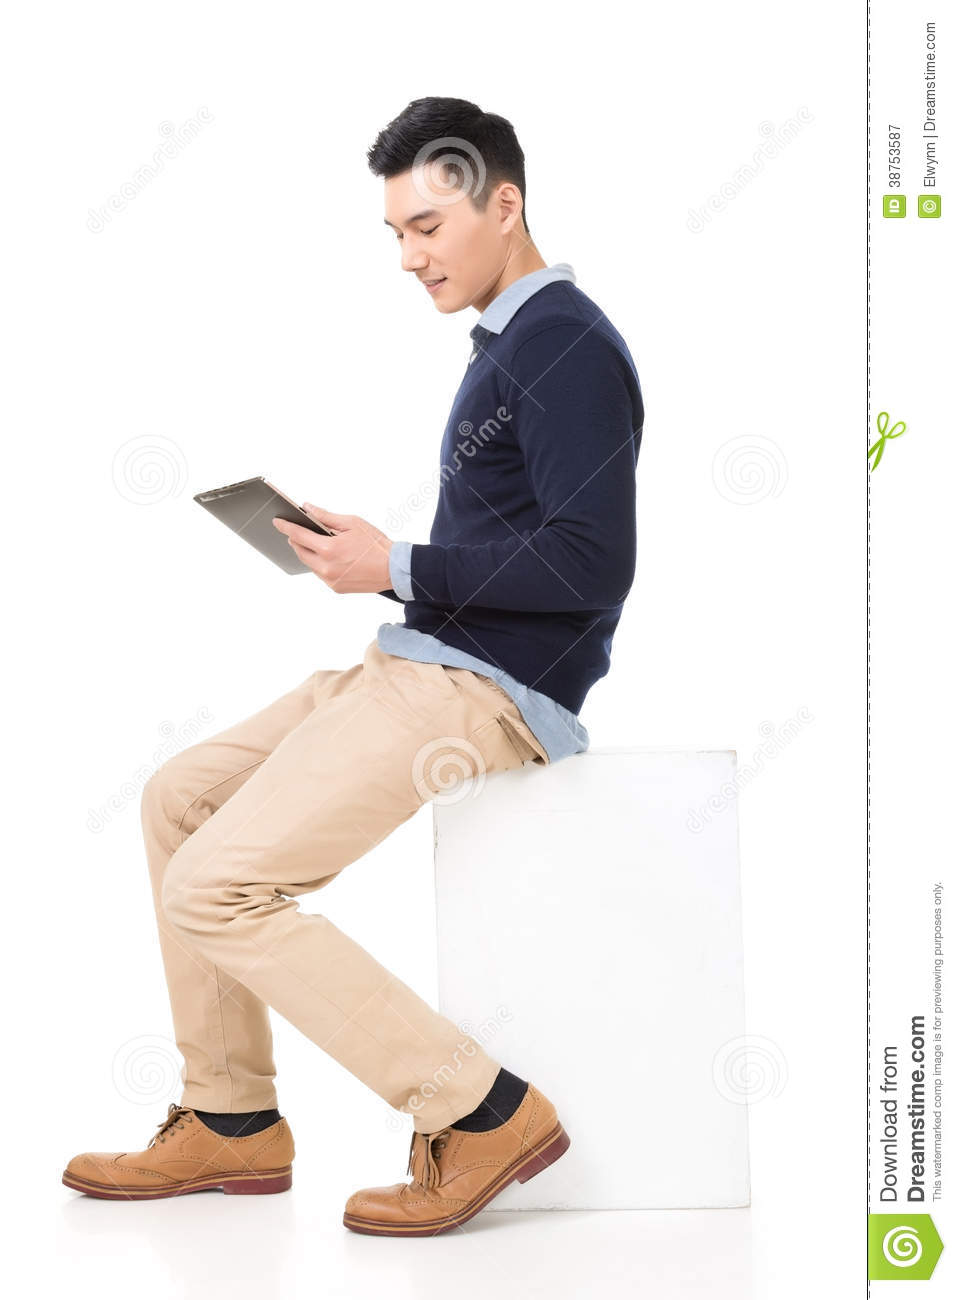 Sit And Use Pad Stock Image Image Of Internet, Holding. Stand Up Desk Riser. Cash Drawer Dimensions. Beds That Have A Desk Underneath. Office Glass Desk. Office Desk Christmas Decorations. Office Desk Lamps Target. Swing Arm Desk Lamps. Custom Dining Room Tables